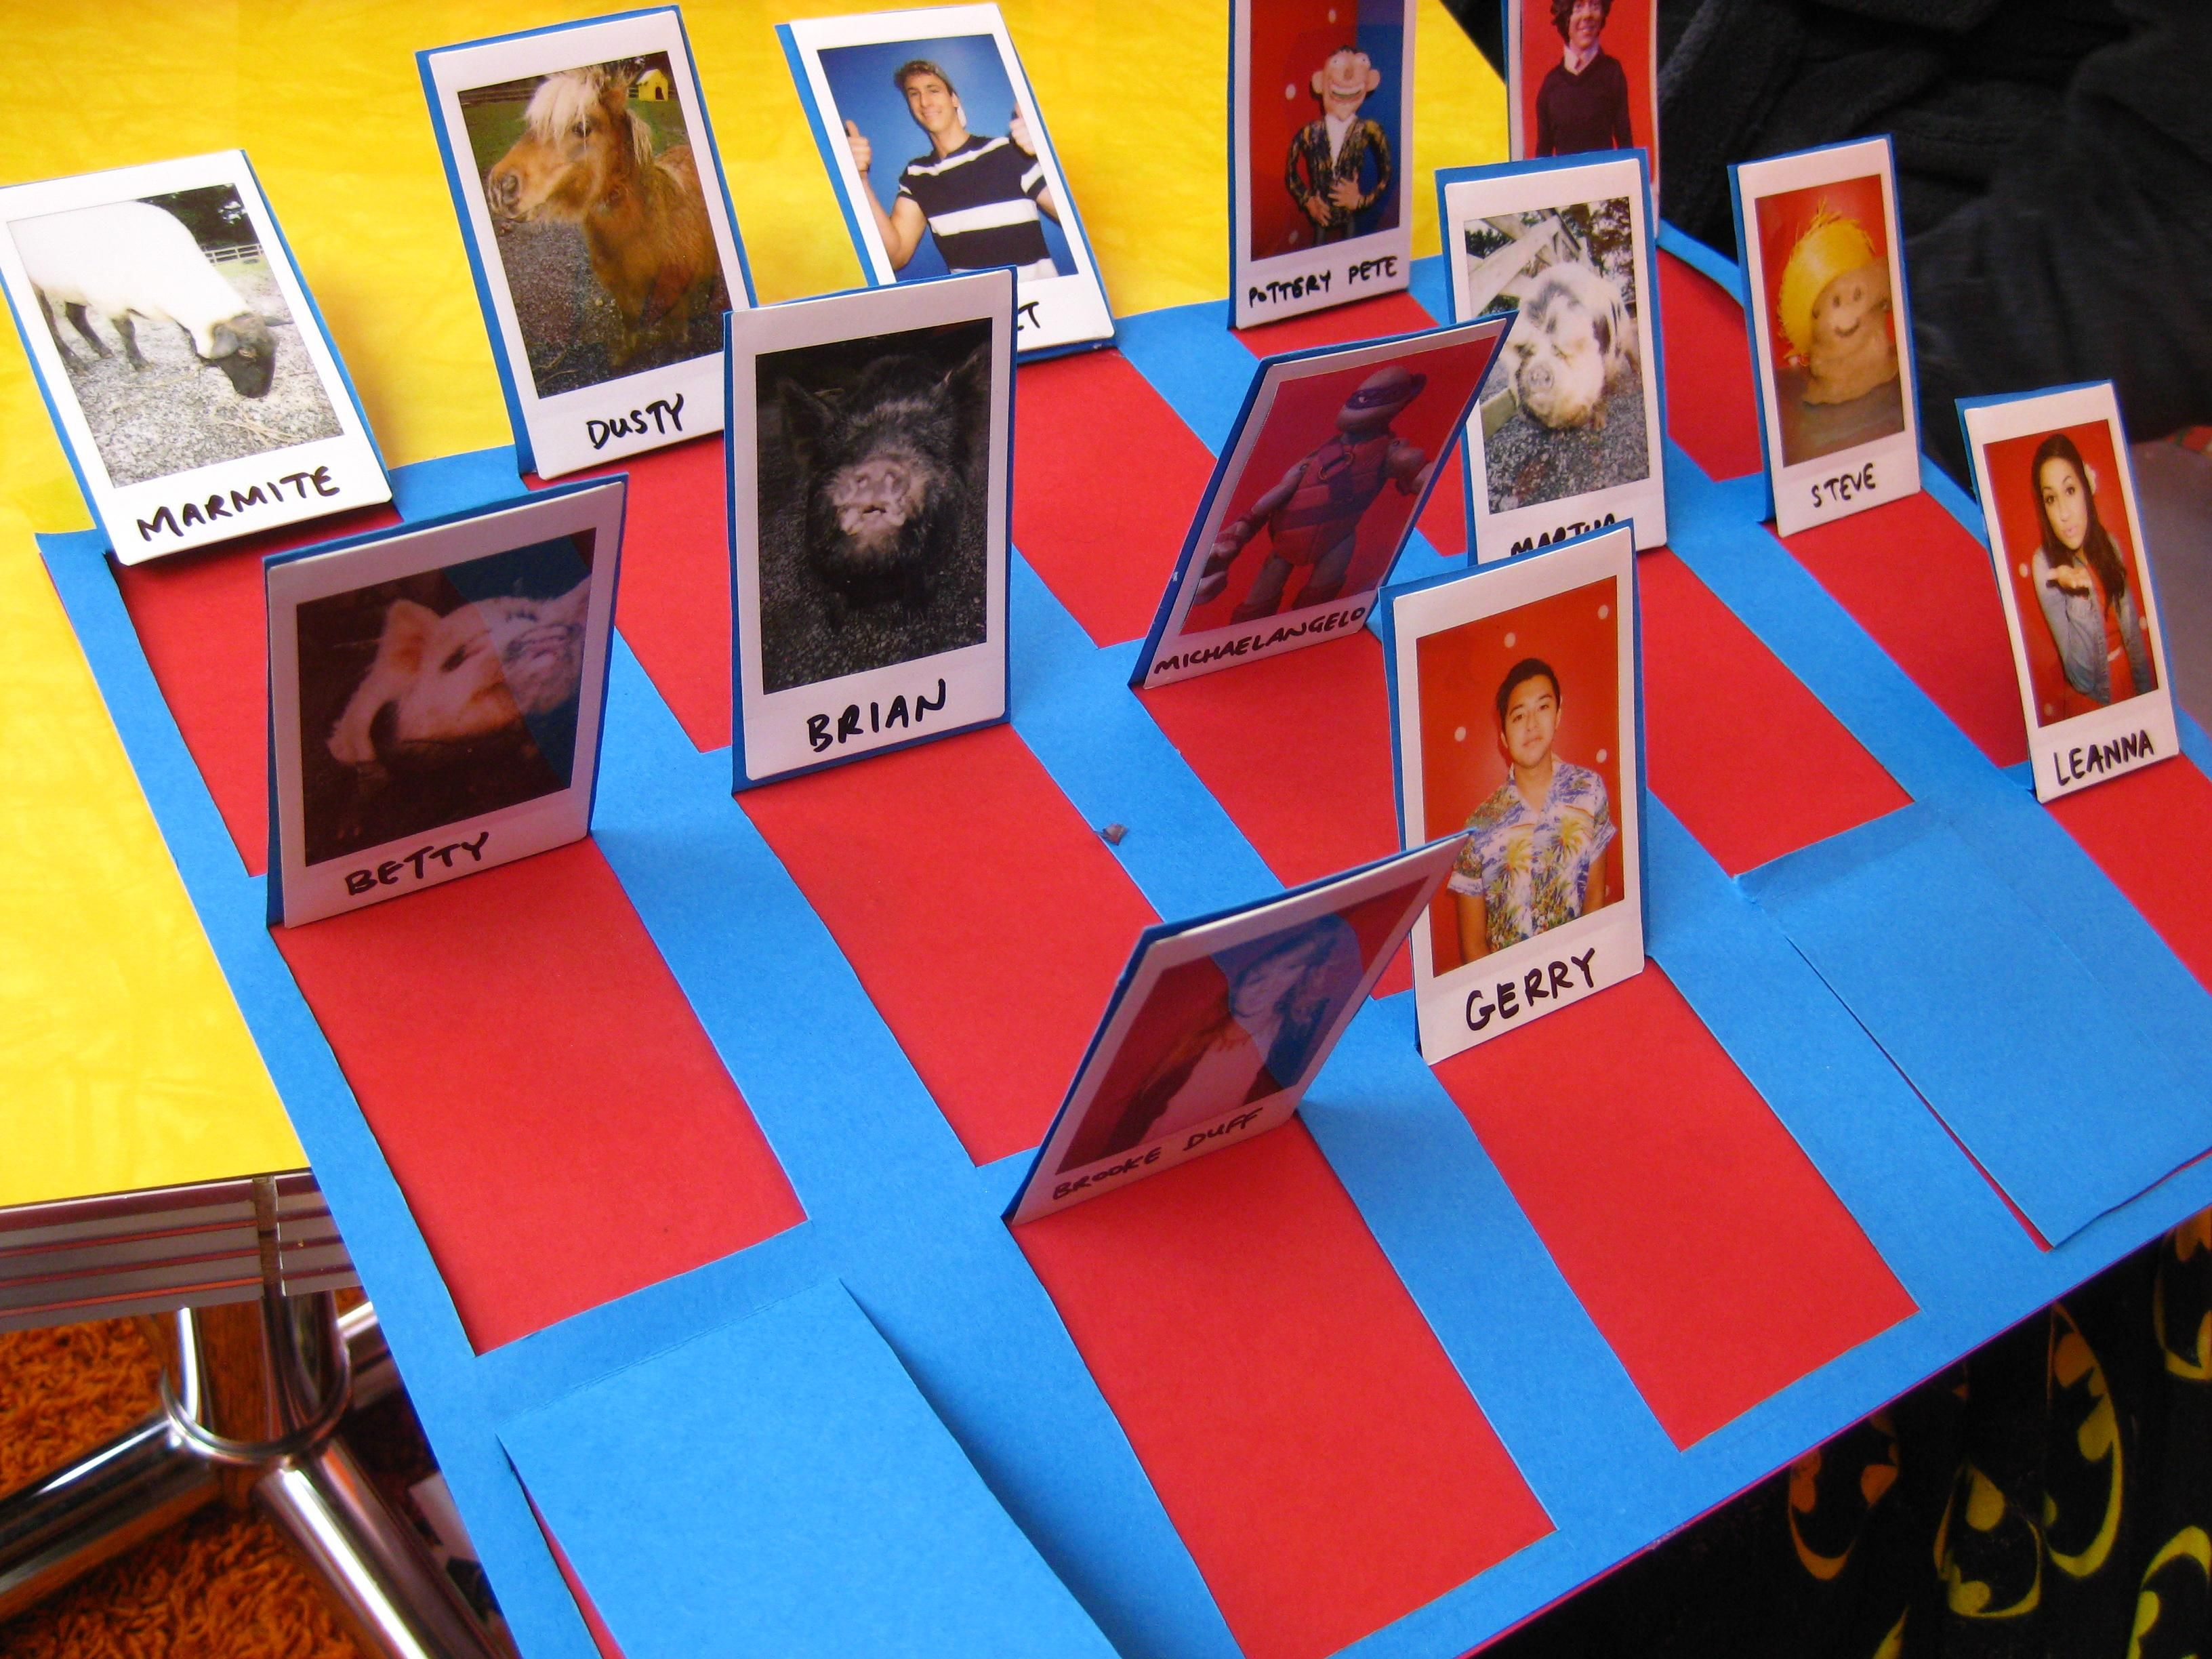 Find all the instructions for the Guess Who? game here and